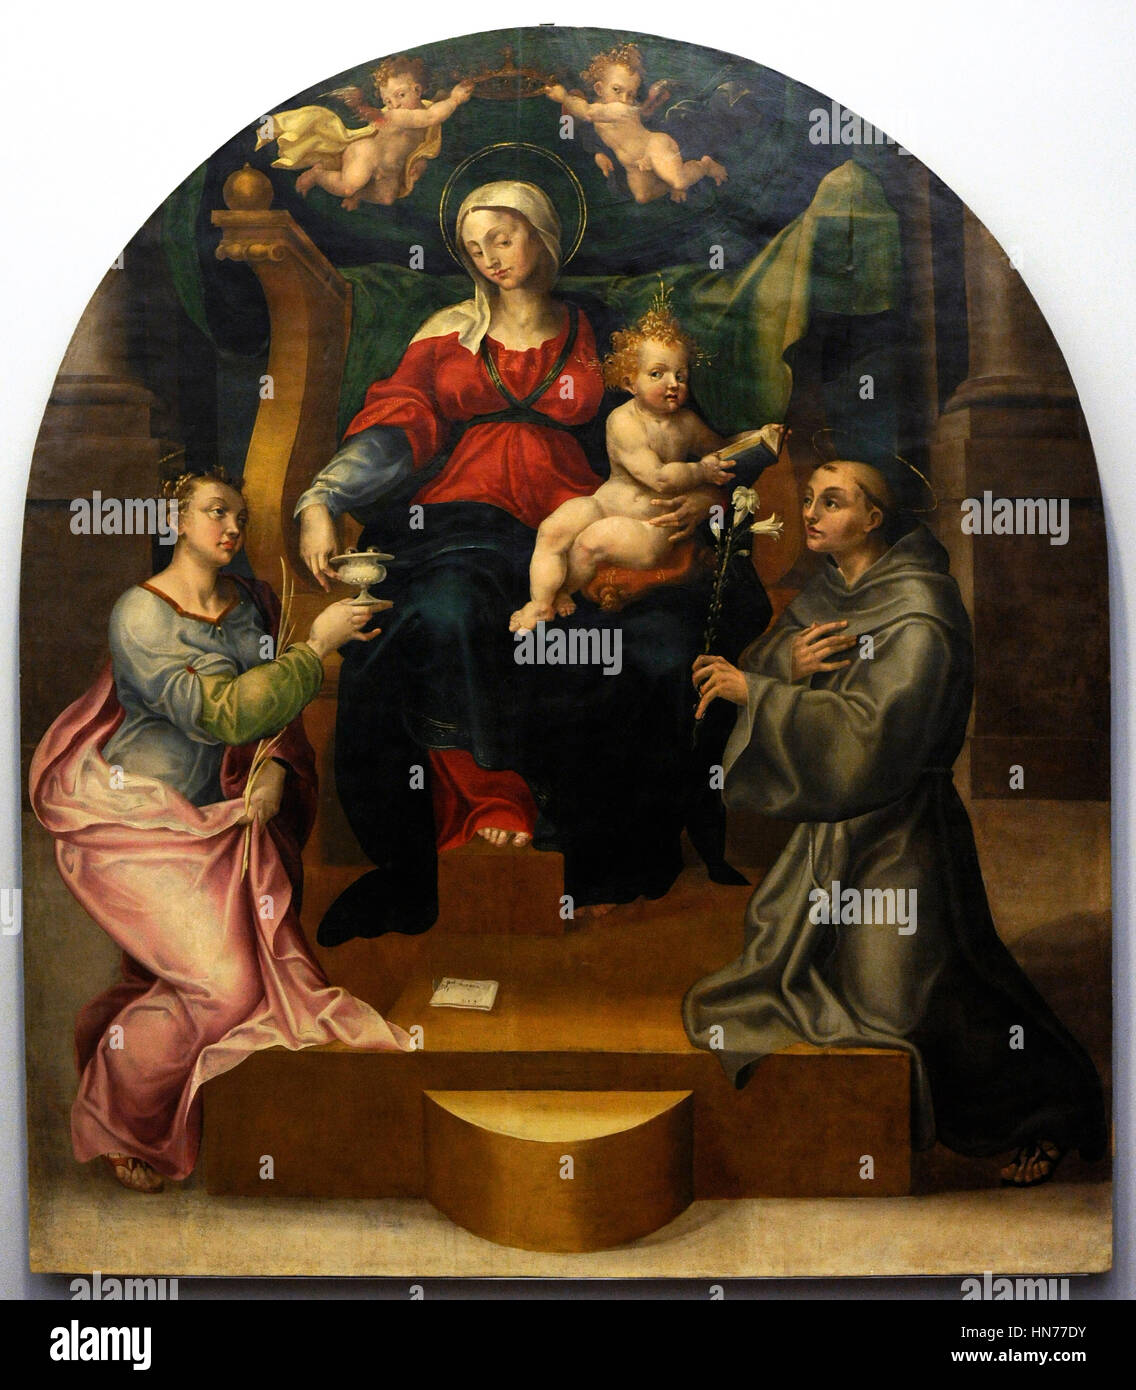 Pietro Negroni (1503-1565). Italian painter. The Virgin and Child with St. Lucy and  Anthony of Padua, 1544 Renaissance - Stock Image